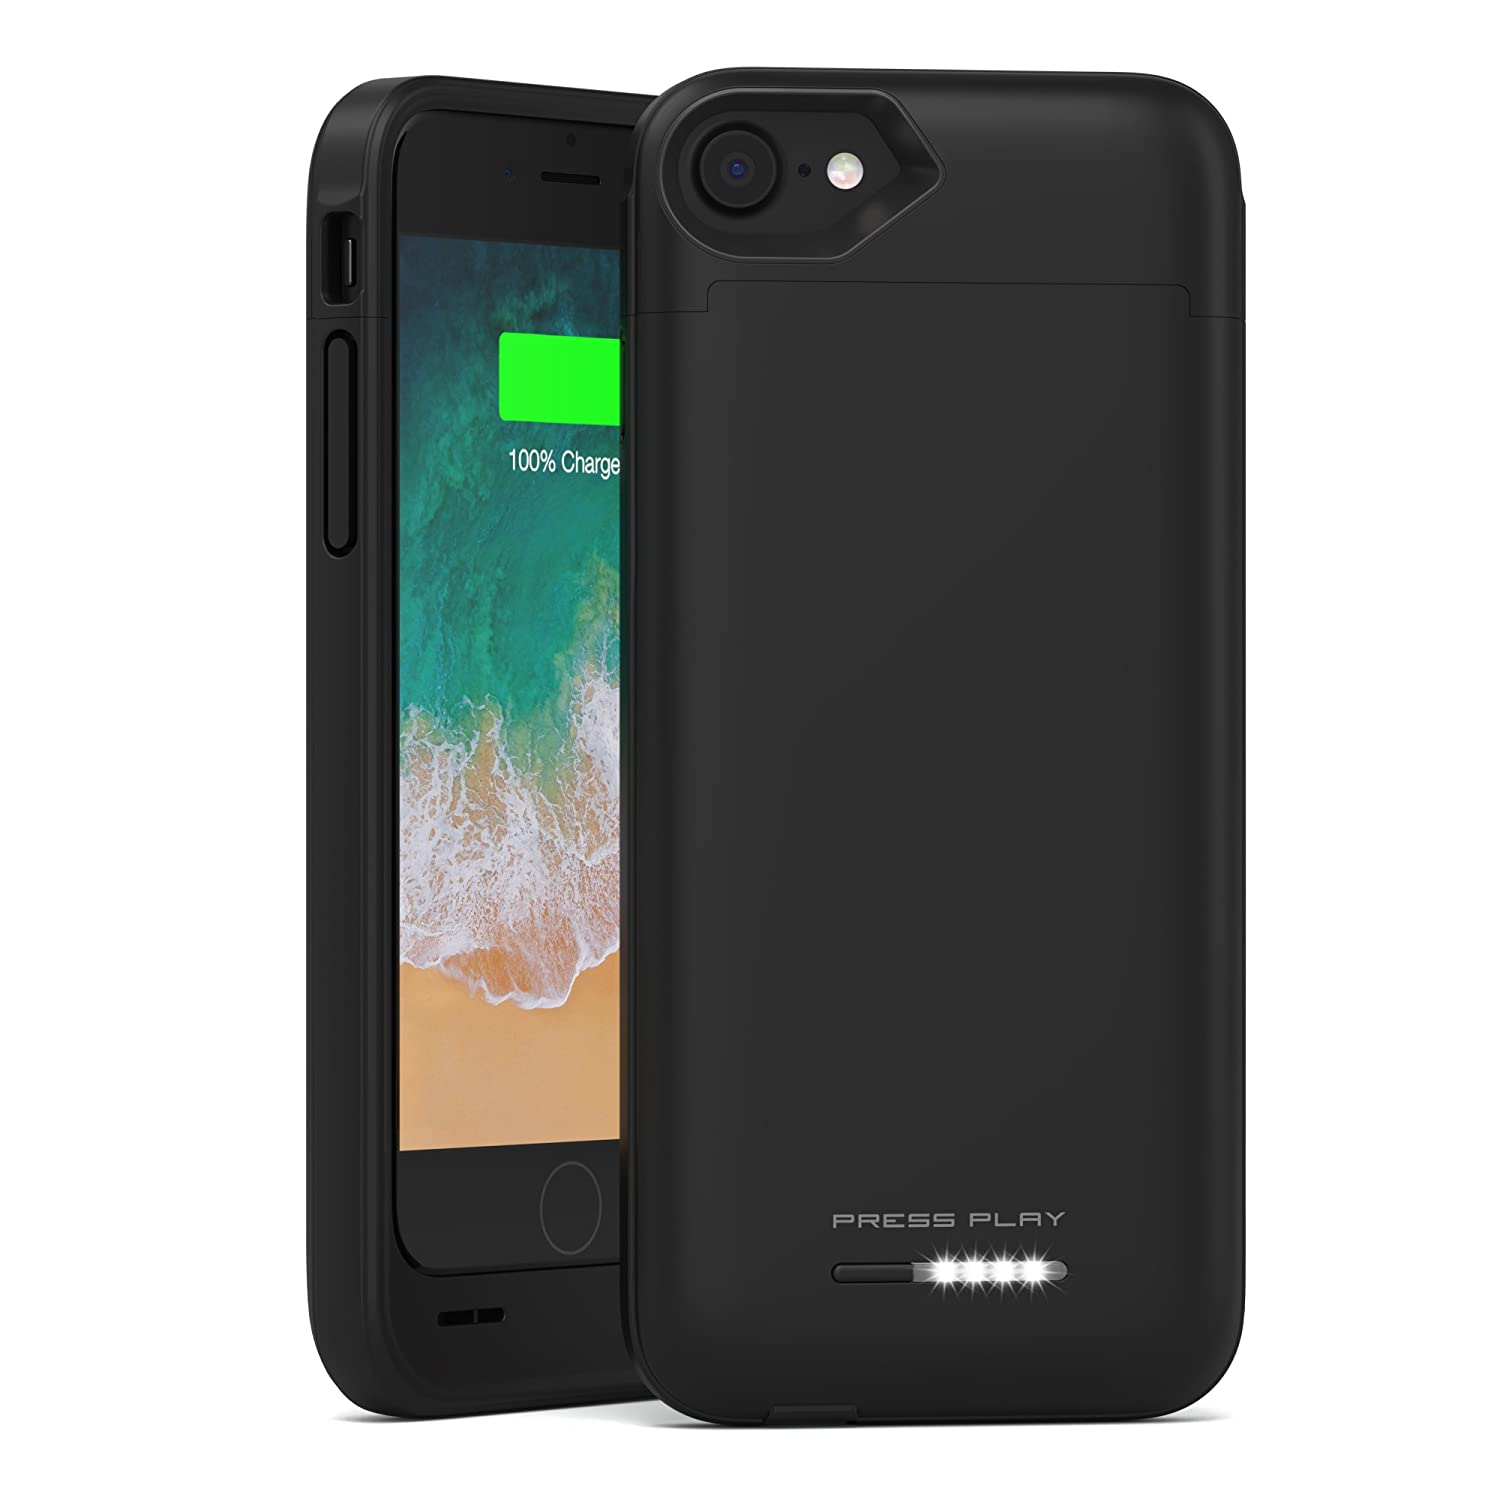 brand new 471ba 9c9f6 iPhone 8 Battery Case with Qi Wireless Charging, (Apple Certified) PRESS  PLAY Nero 3100mAh Slim Rechargeable Extended Protective Portable Backup ...